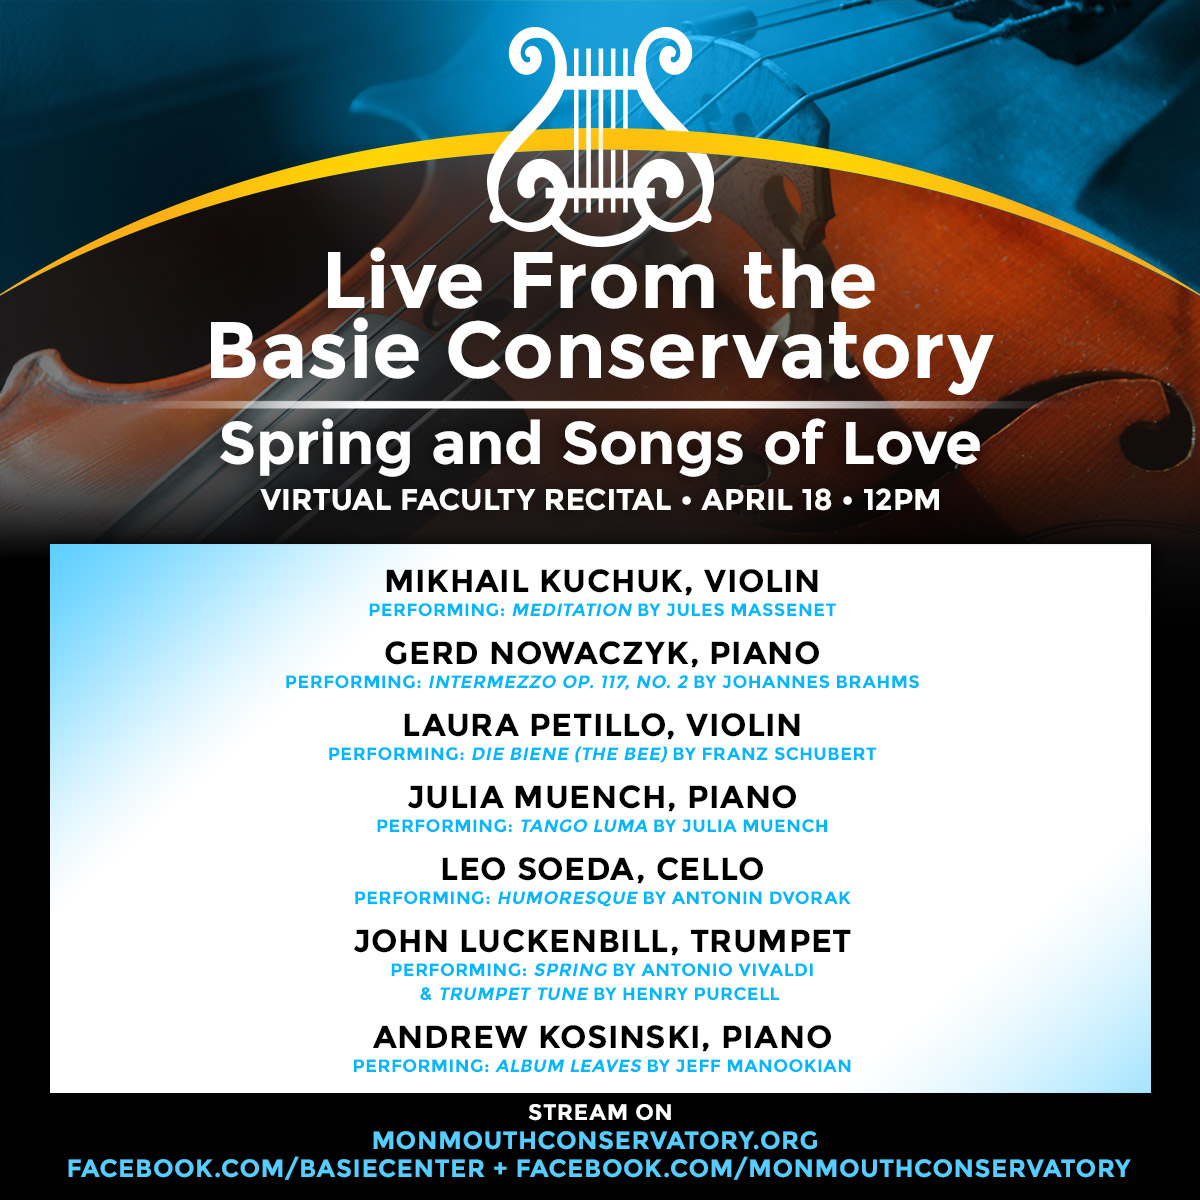 Virtual Conservatory Faculty Recital: Spring And Songs Of Love